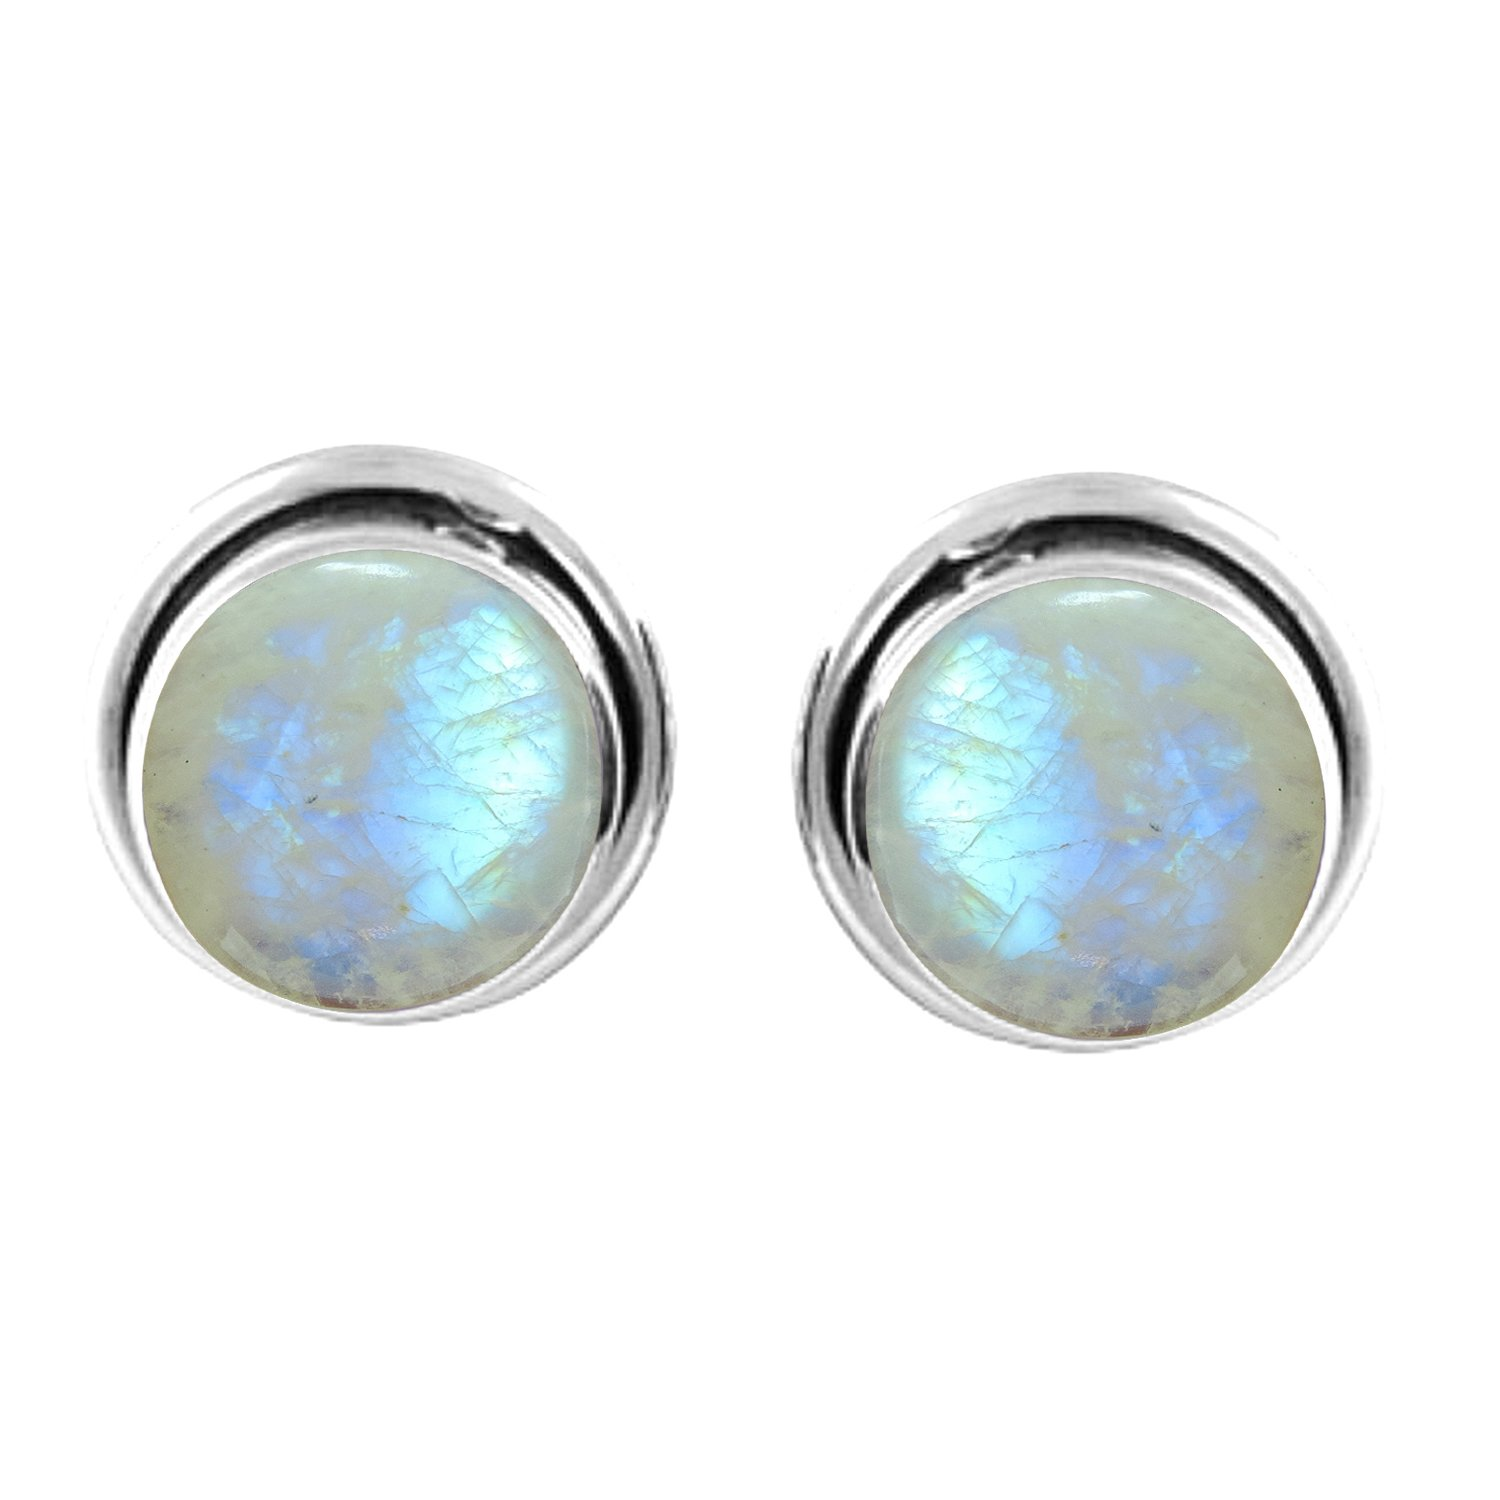 Gemstones Moonstone Stud Earrings